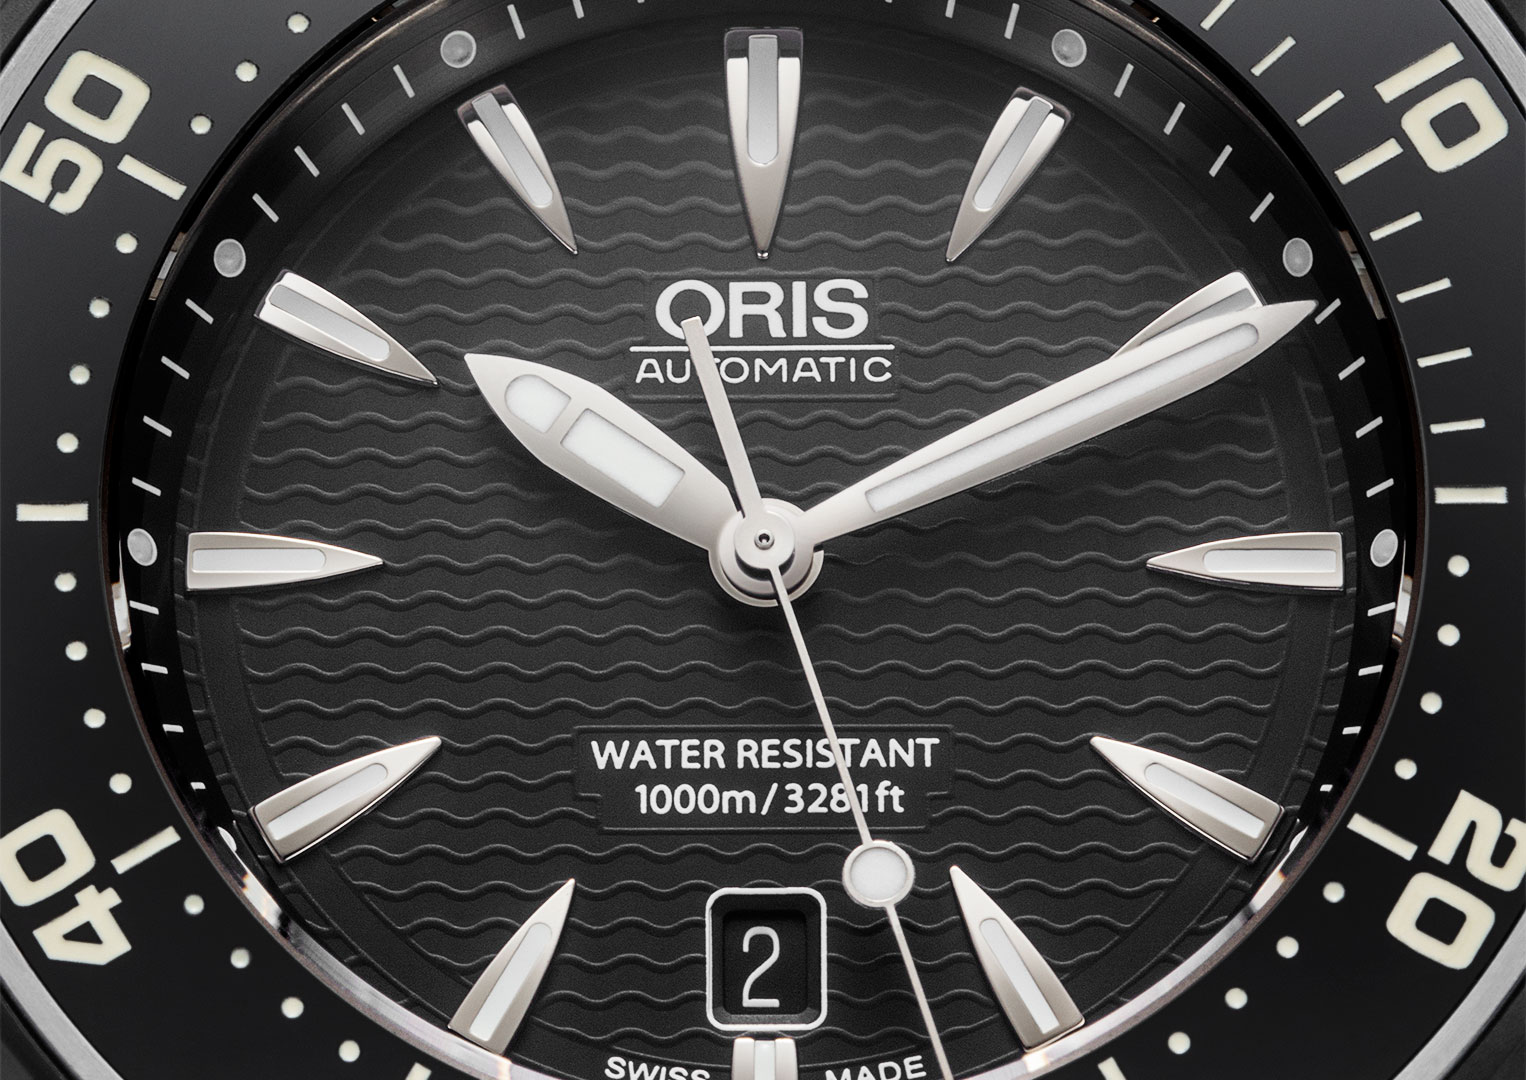 Oris recommend that it's watches are serviced every 3 to 5 years